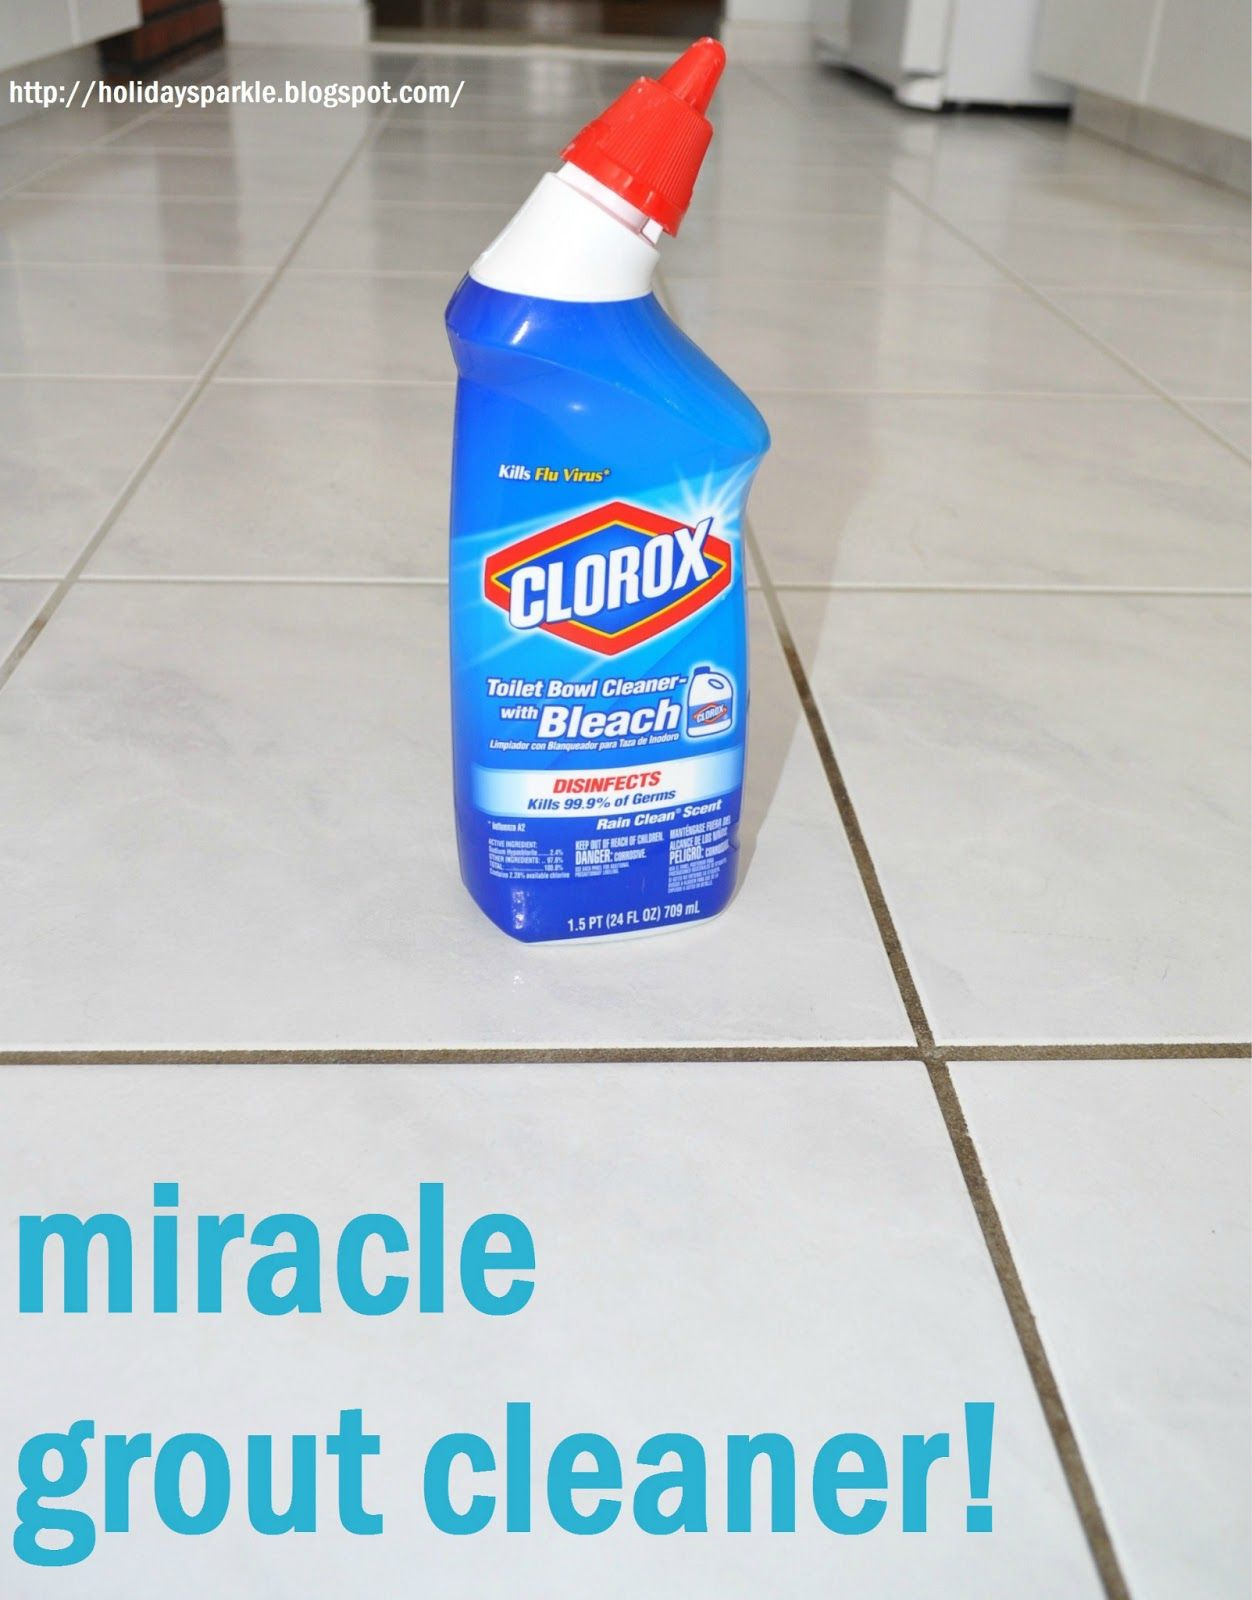 Clean grout clorox toilet bowl cleaner with bleach gonna try clean grout clorox toilet bowl cleaner with bleach gonna try this has great doublecrazyfo Images